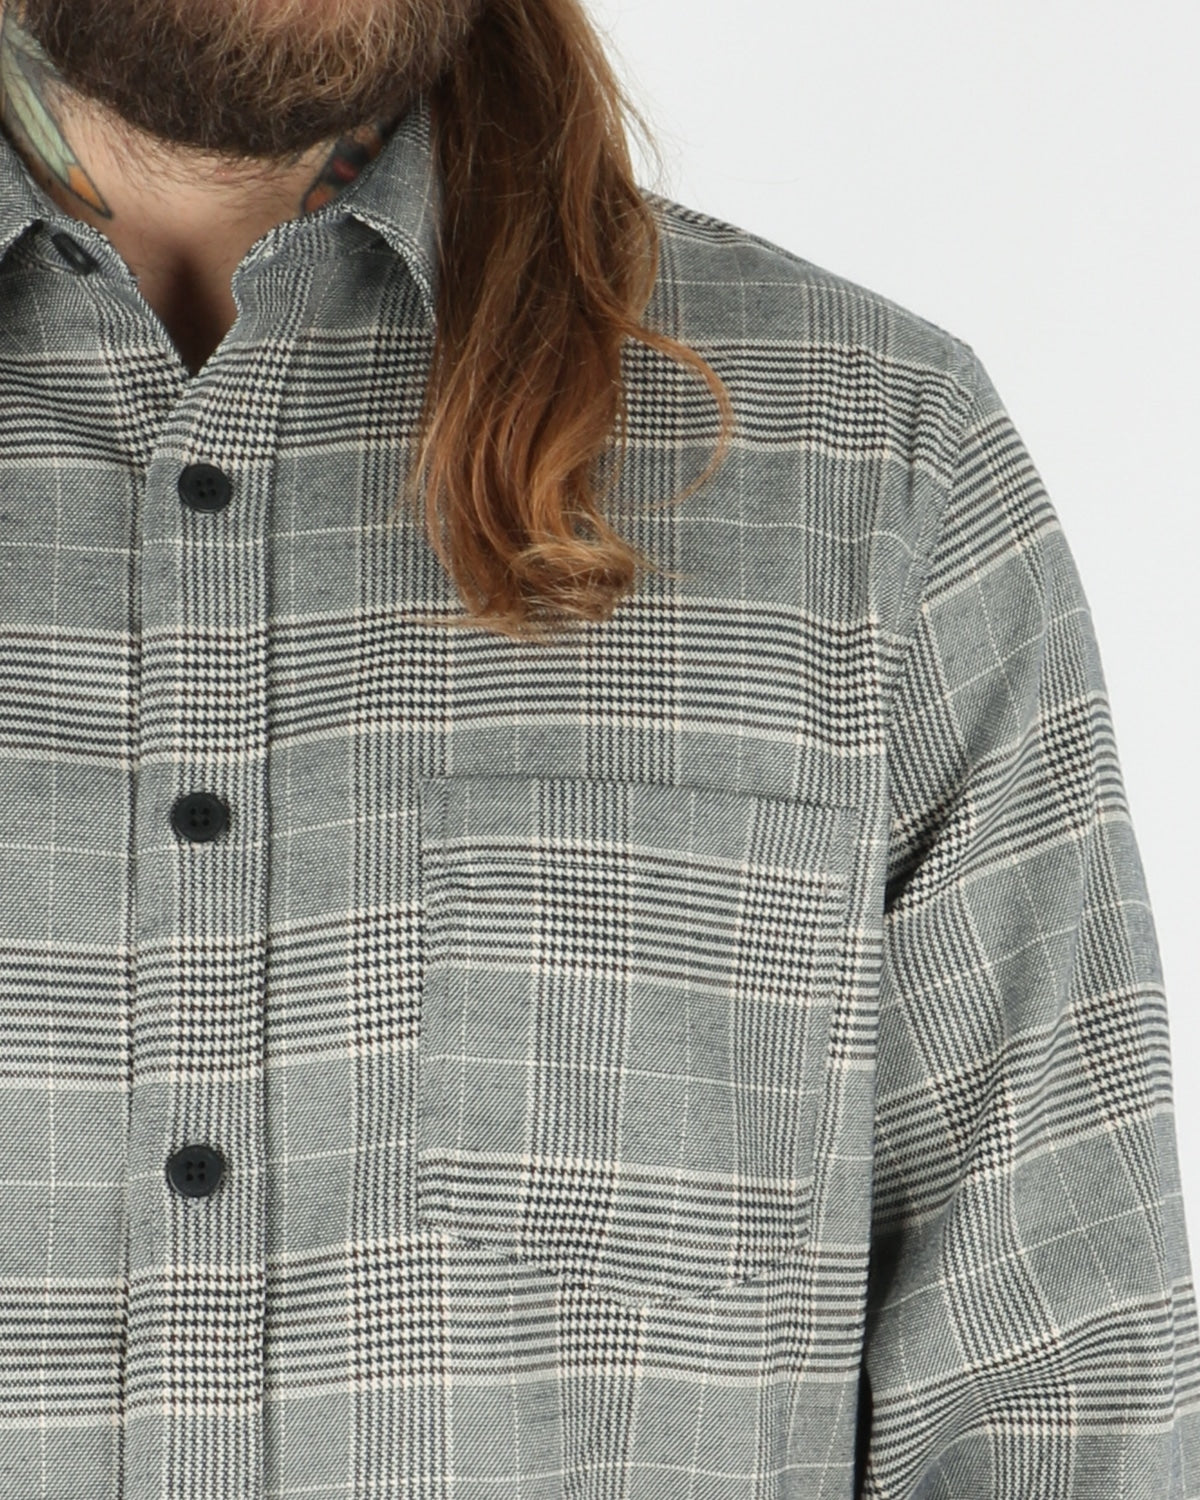 han kjobenhavn_one pocket shirt_grey tweed_3_4